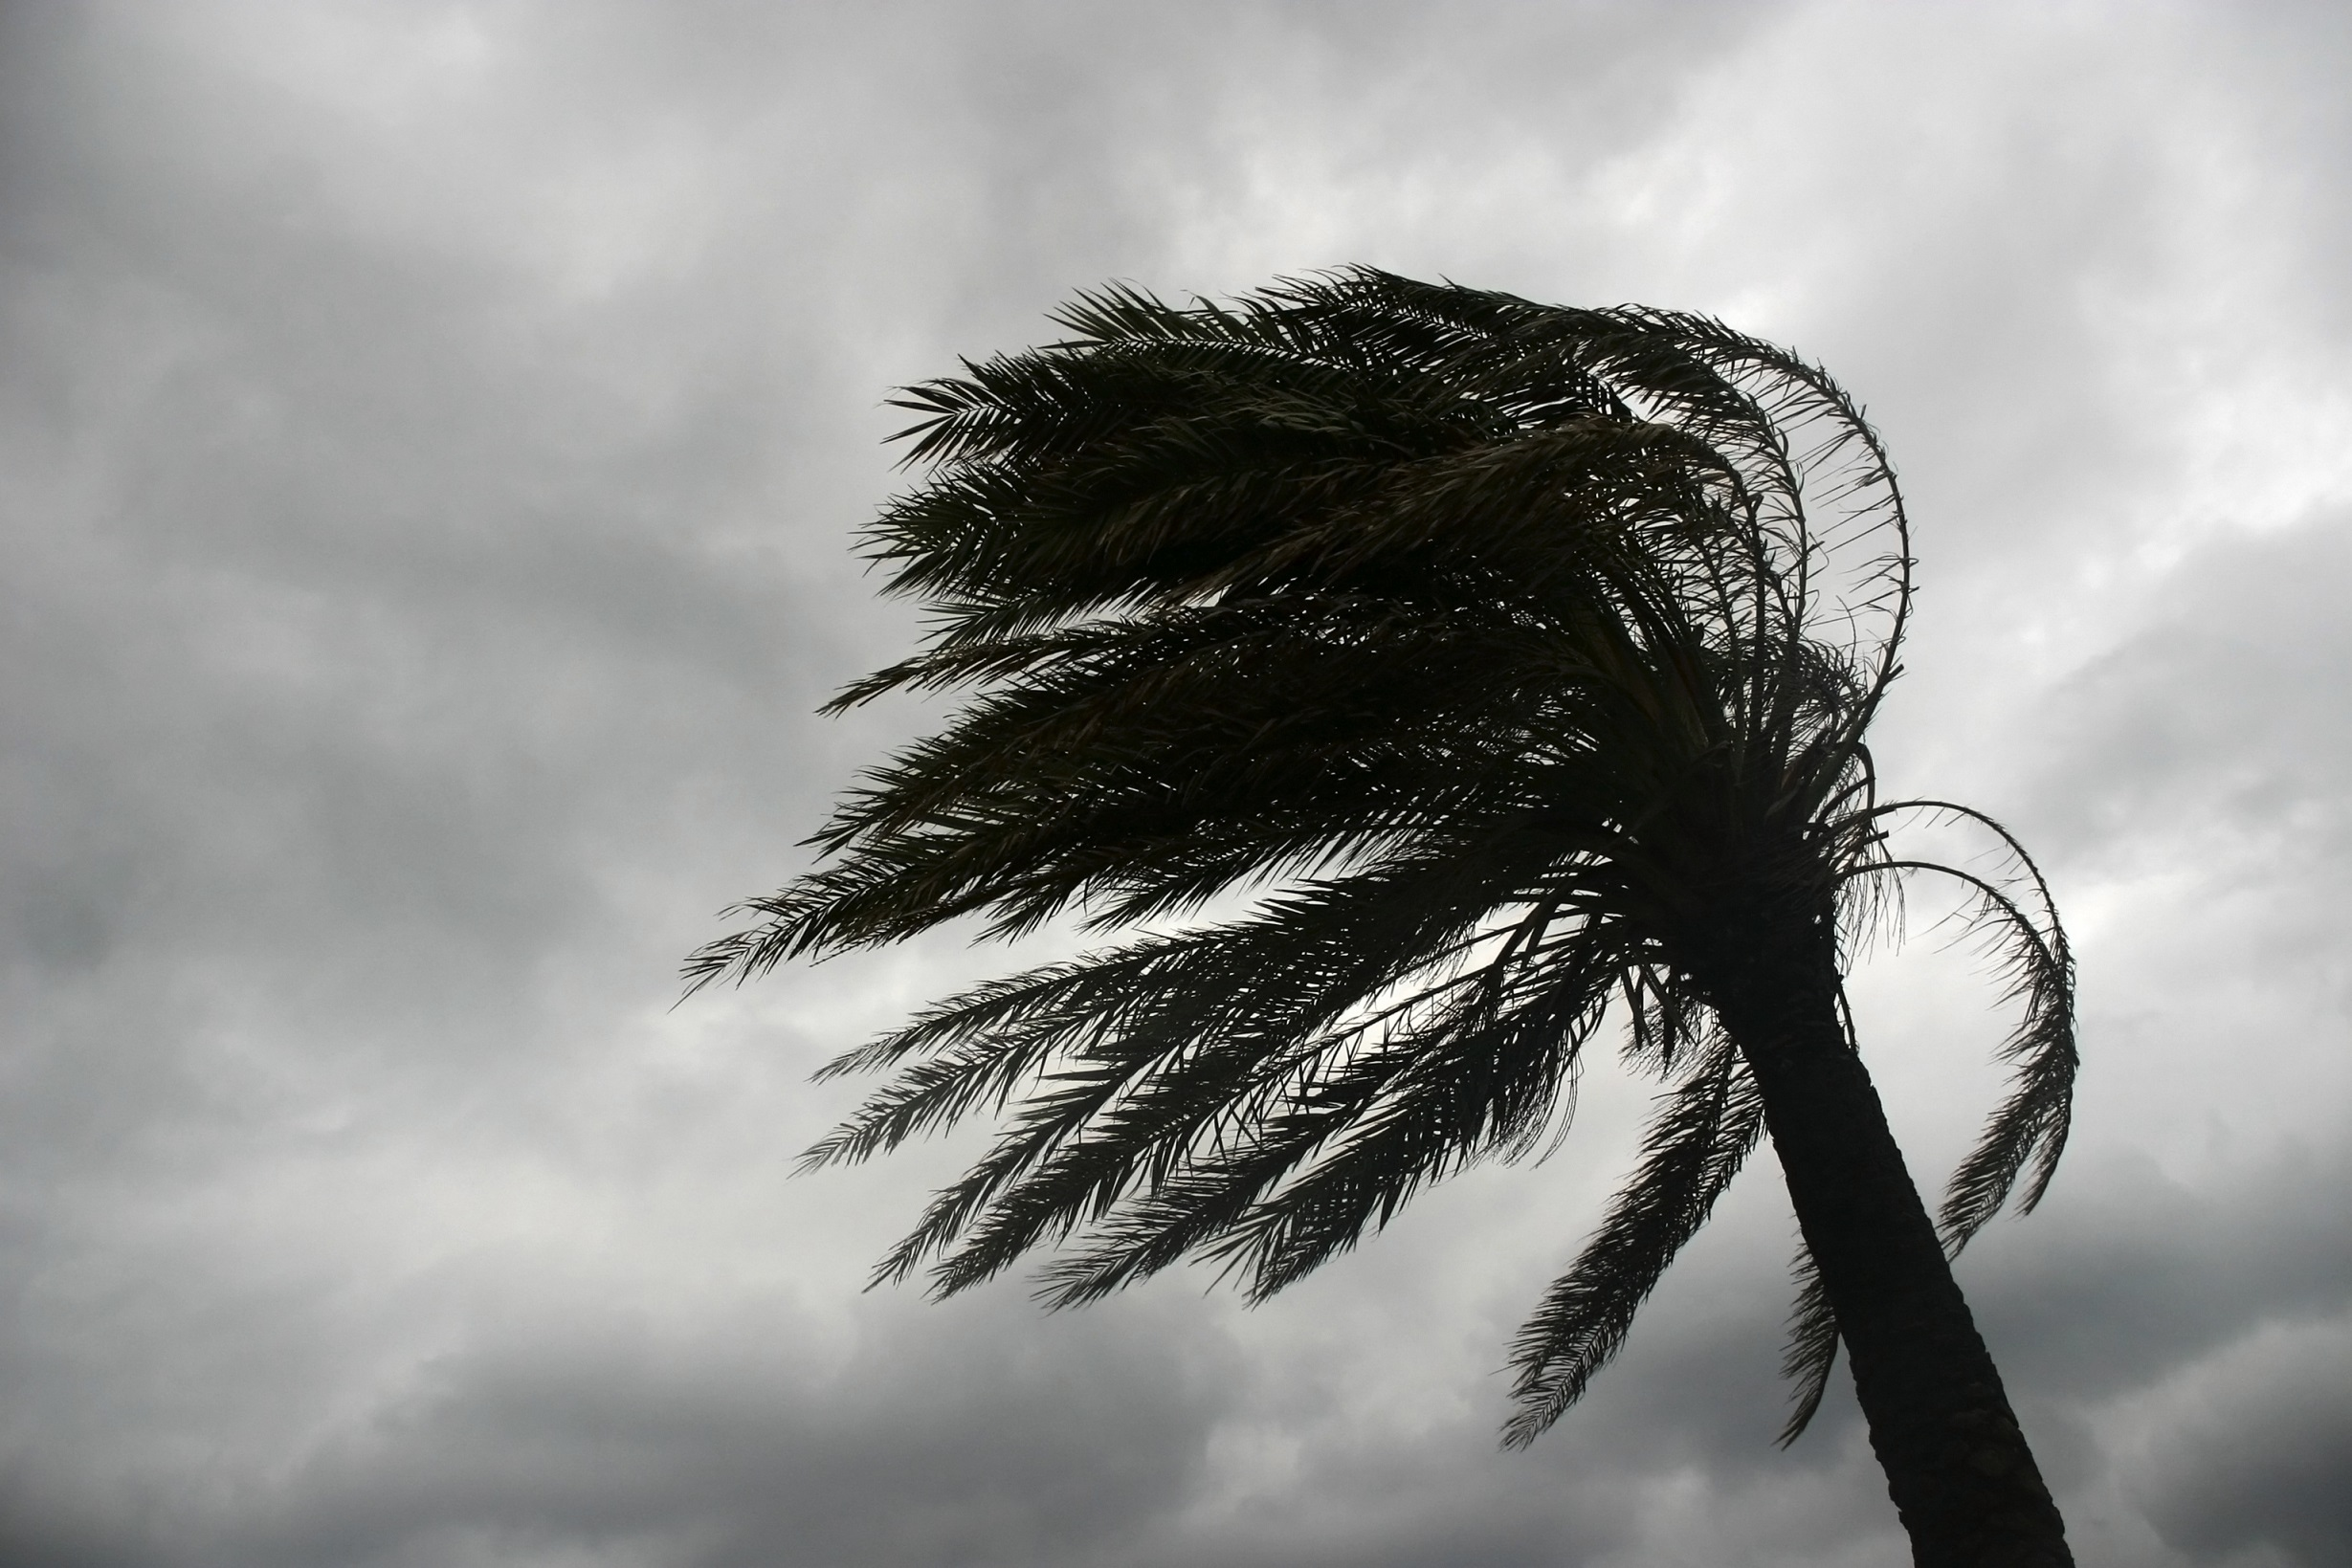 Palm Trees Windy Weather Quotes Quotesgram